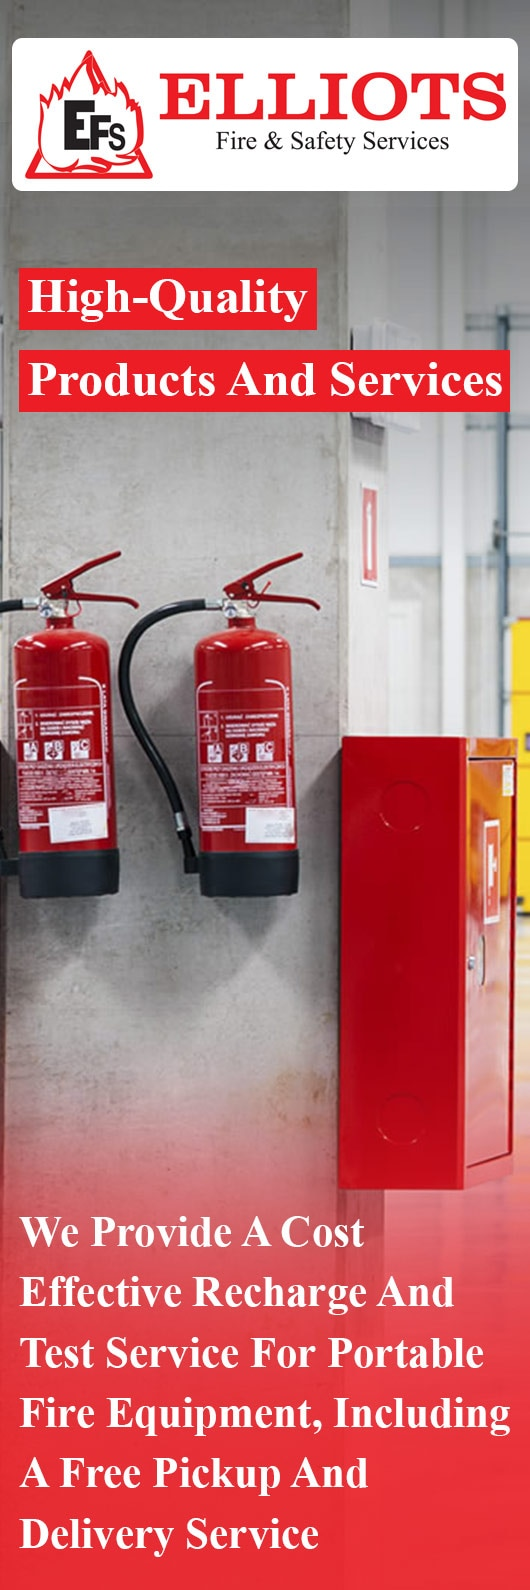 Elliots Fire & Safety Services - Fire Safety Equipment